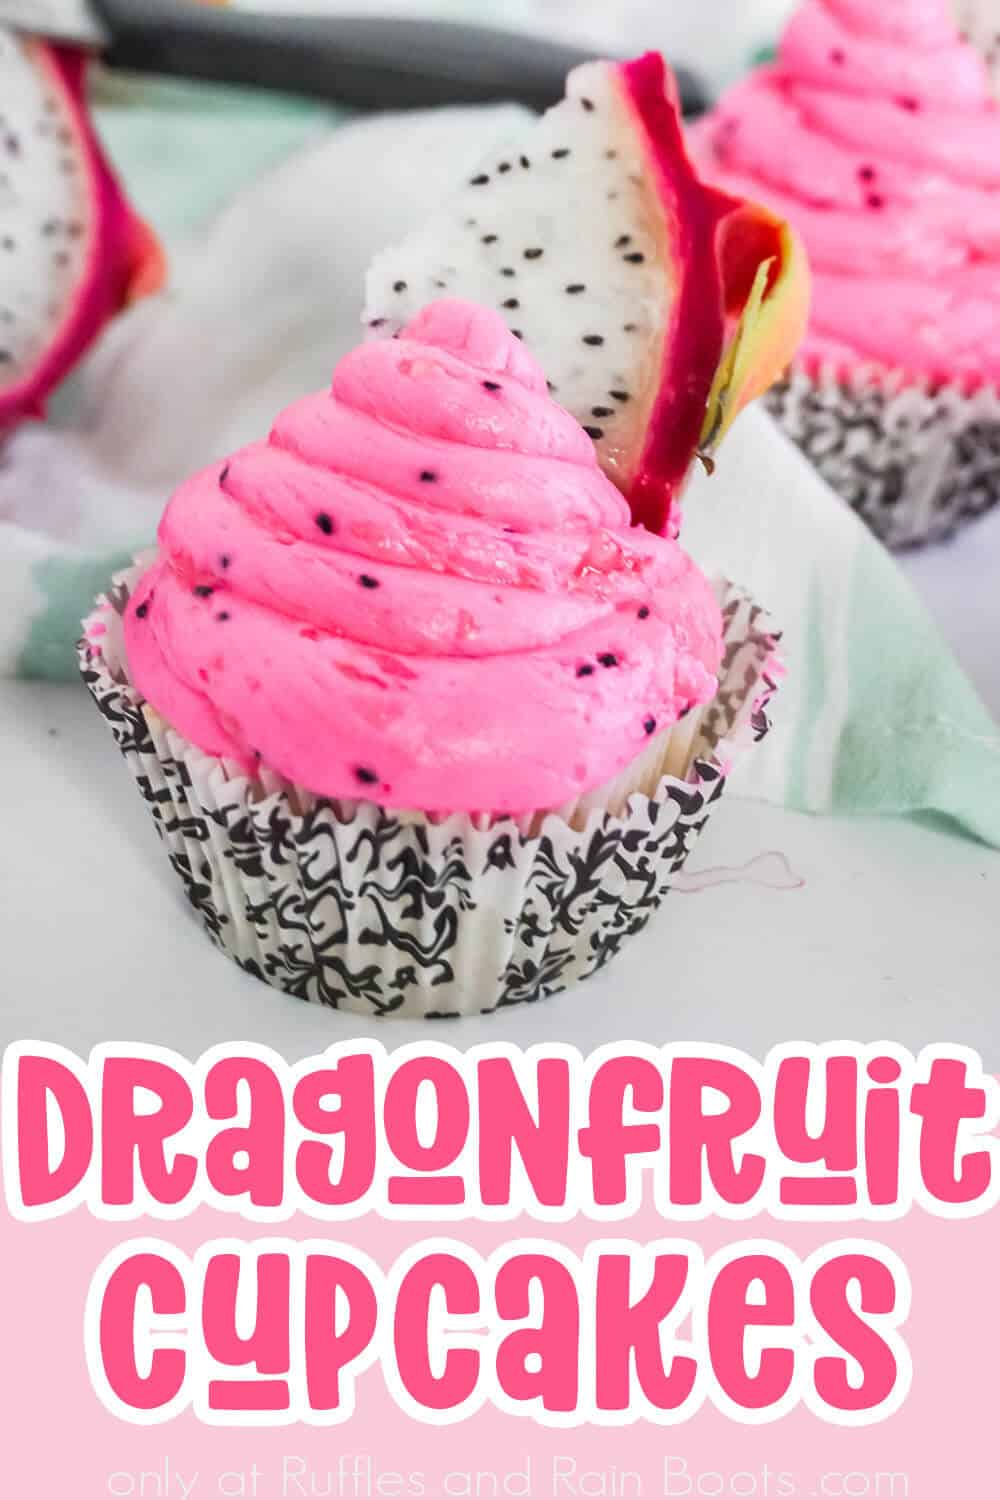 closeup of cupcakes made with dragon fruit with text which reads dragonfruit cupcakes